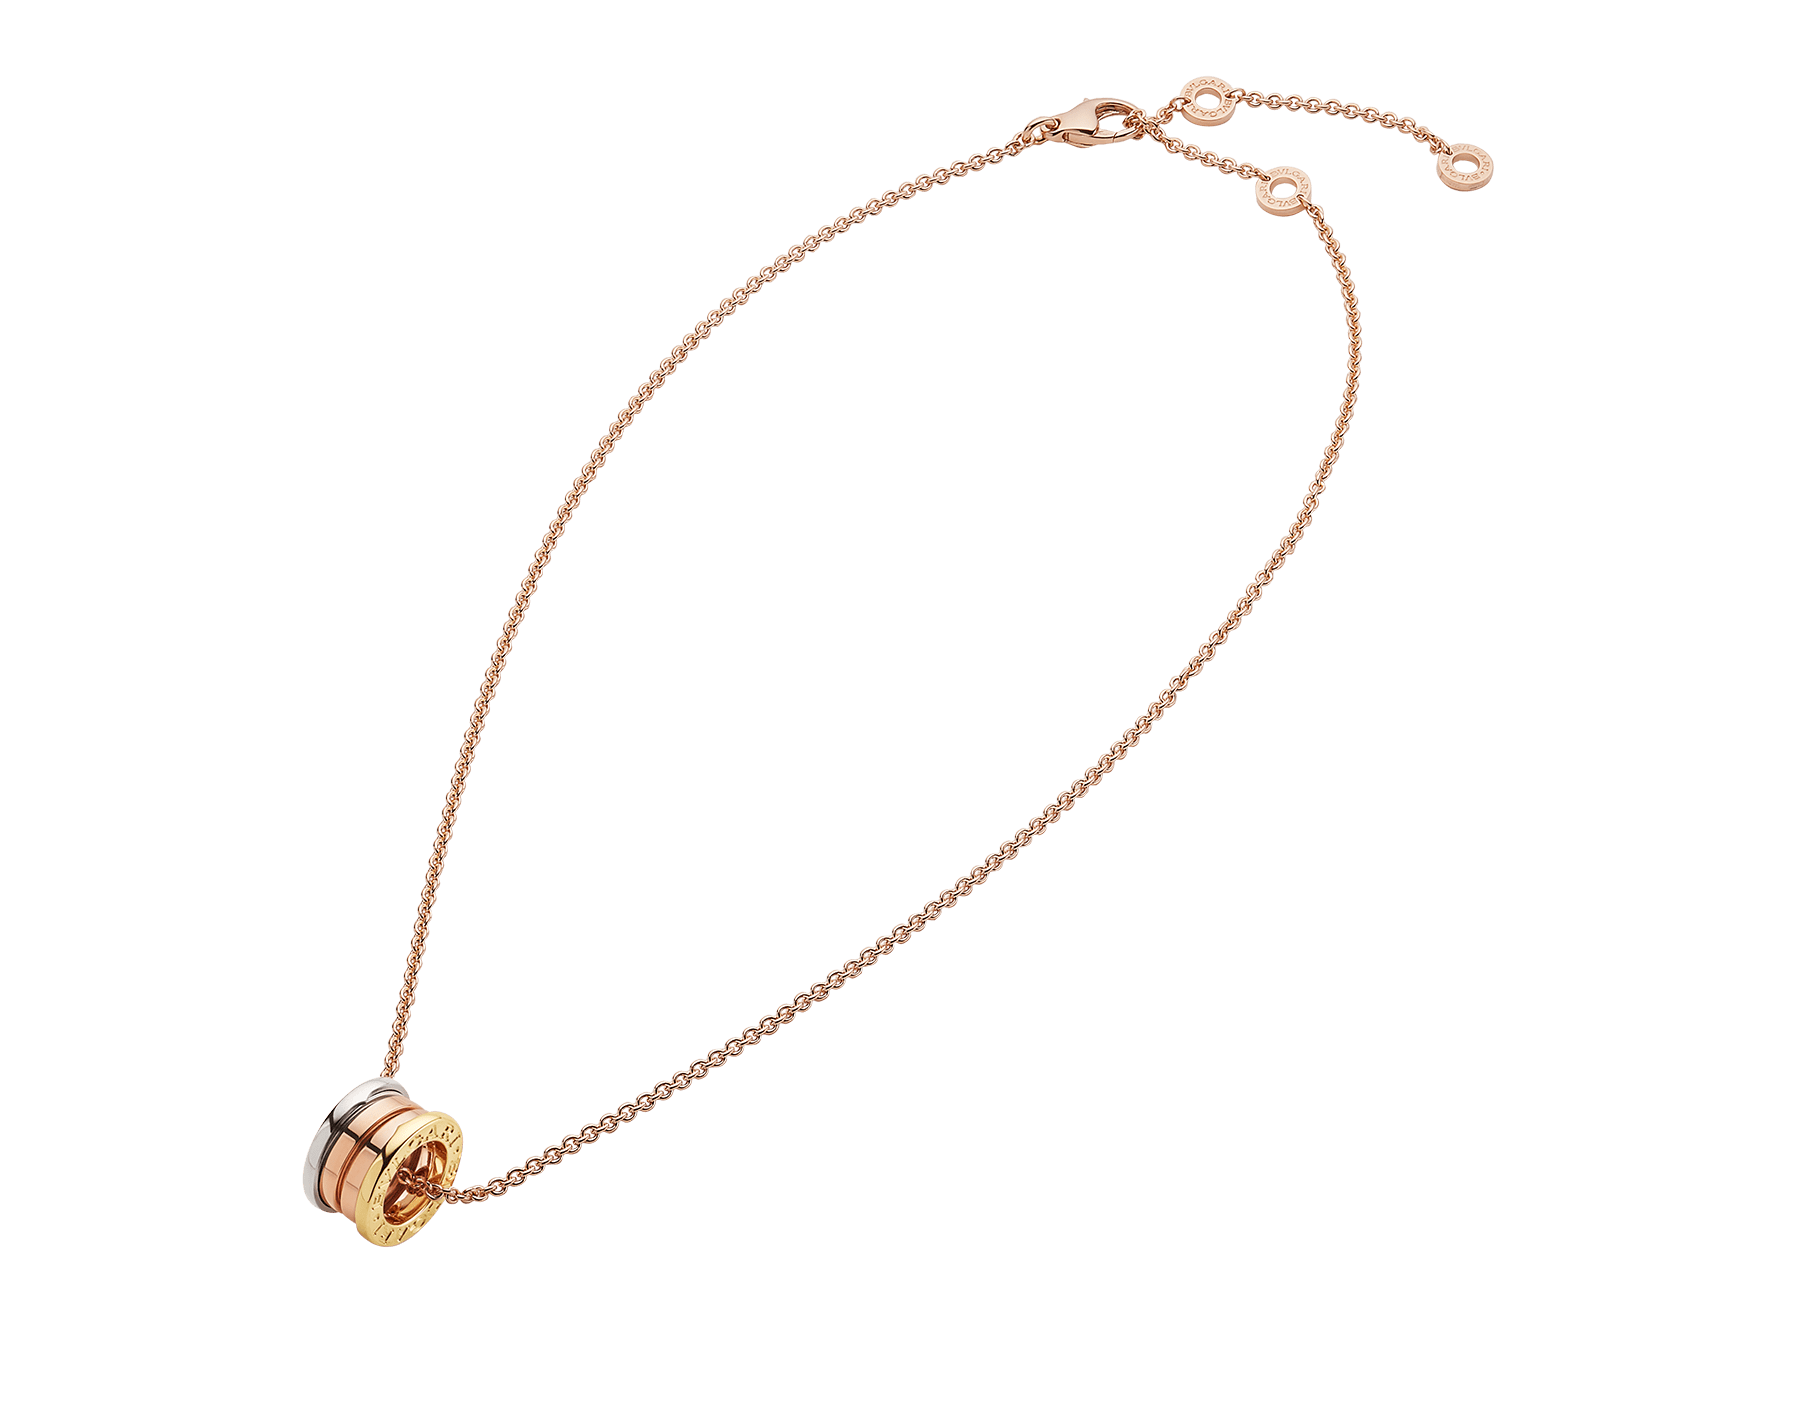 B.zero1 necklace in 18 kt rose gold with pendant in 18 kt rose, white and yellow gold. 352397 image 2